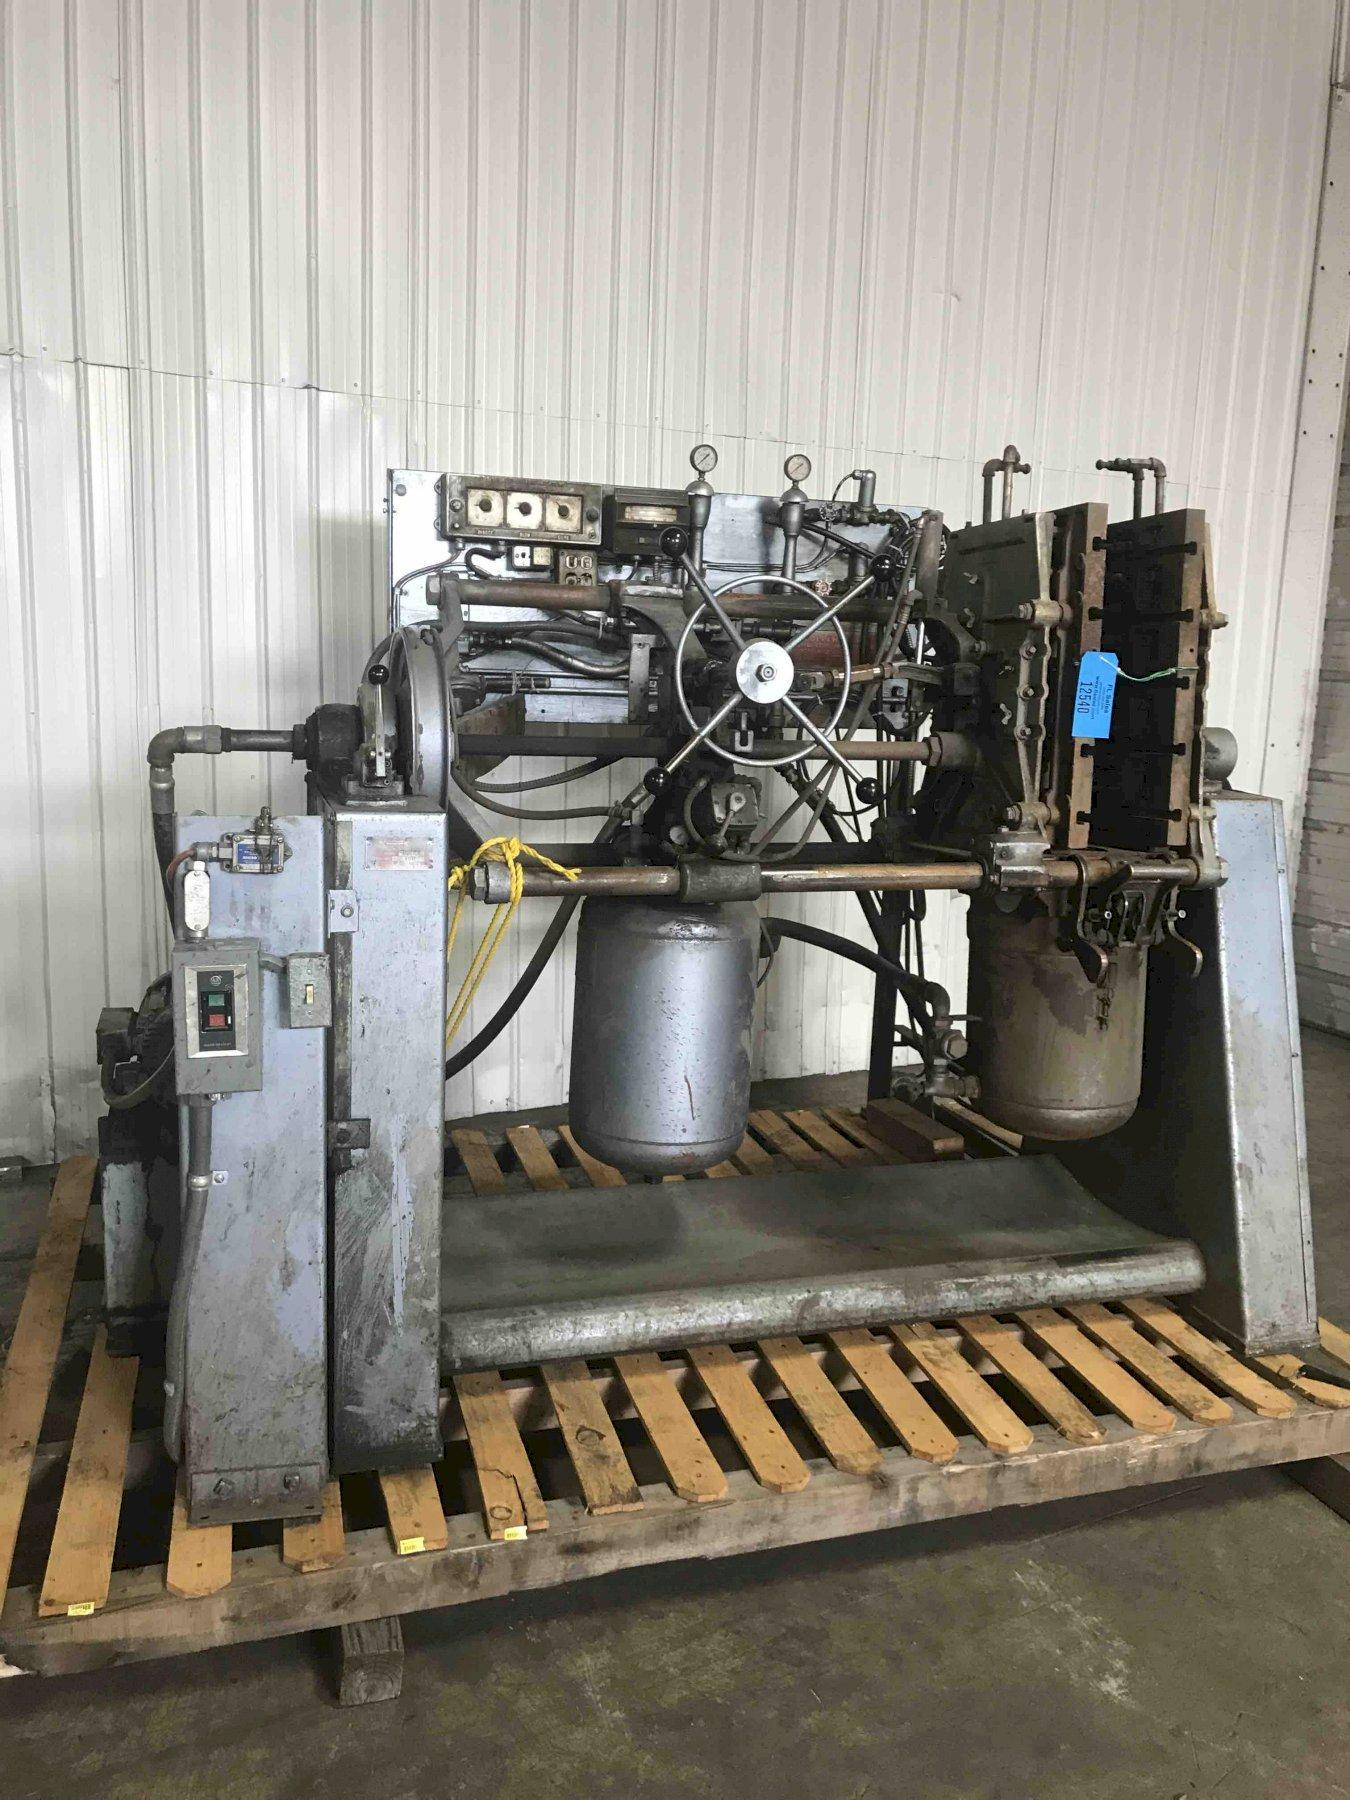 Dependable model 400sa shell core machine s/n 198 with gas panel, nice machine